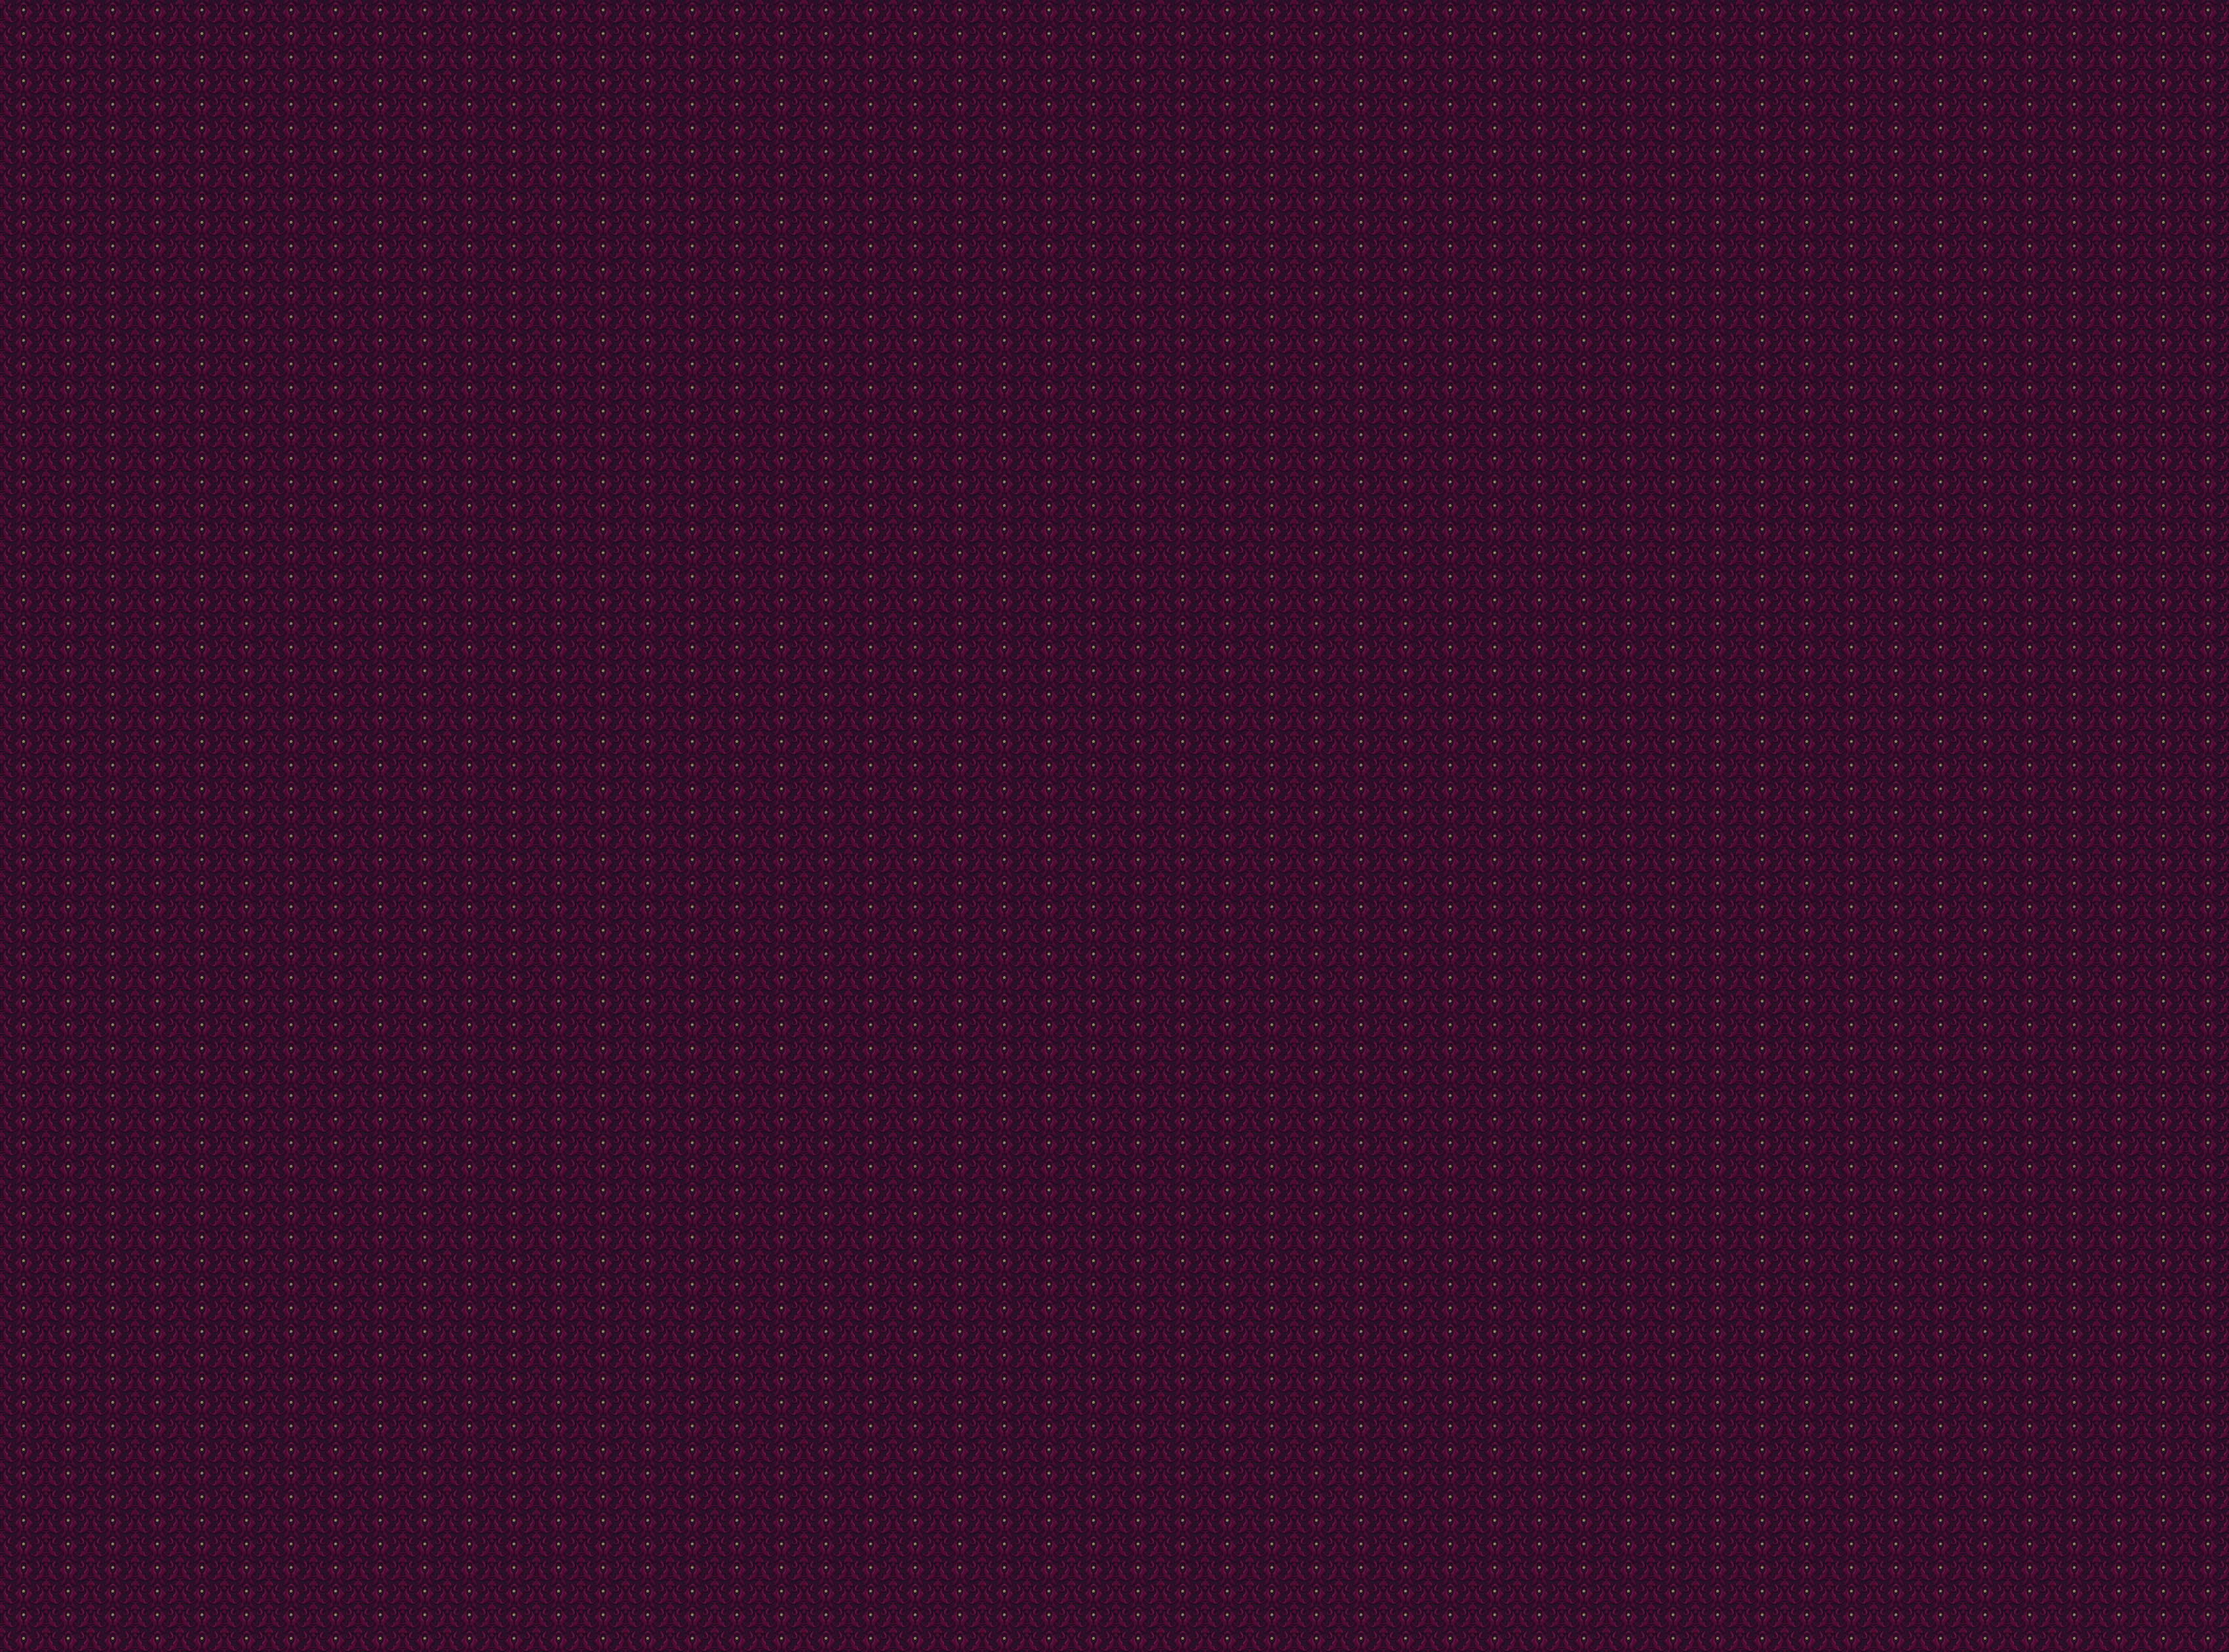 25 Graphical Interior Seamless Patterns Backgrounds 3400x2520